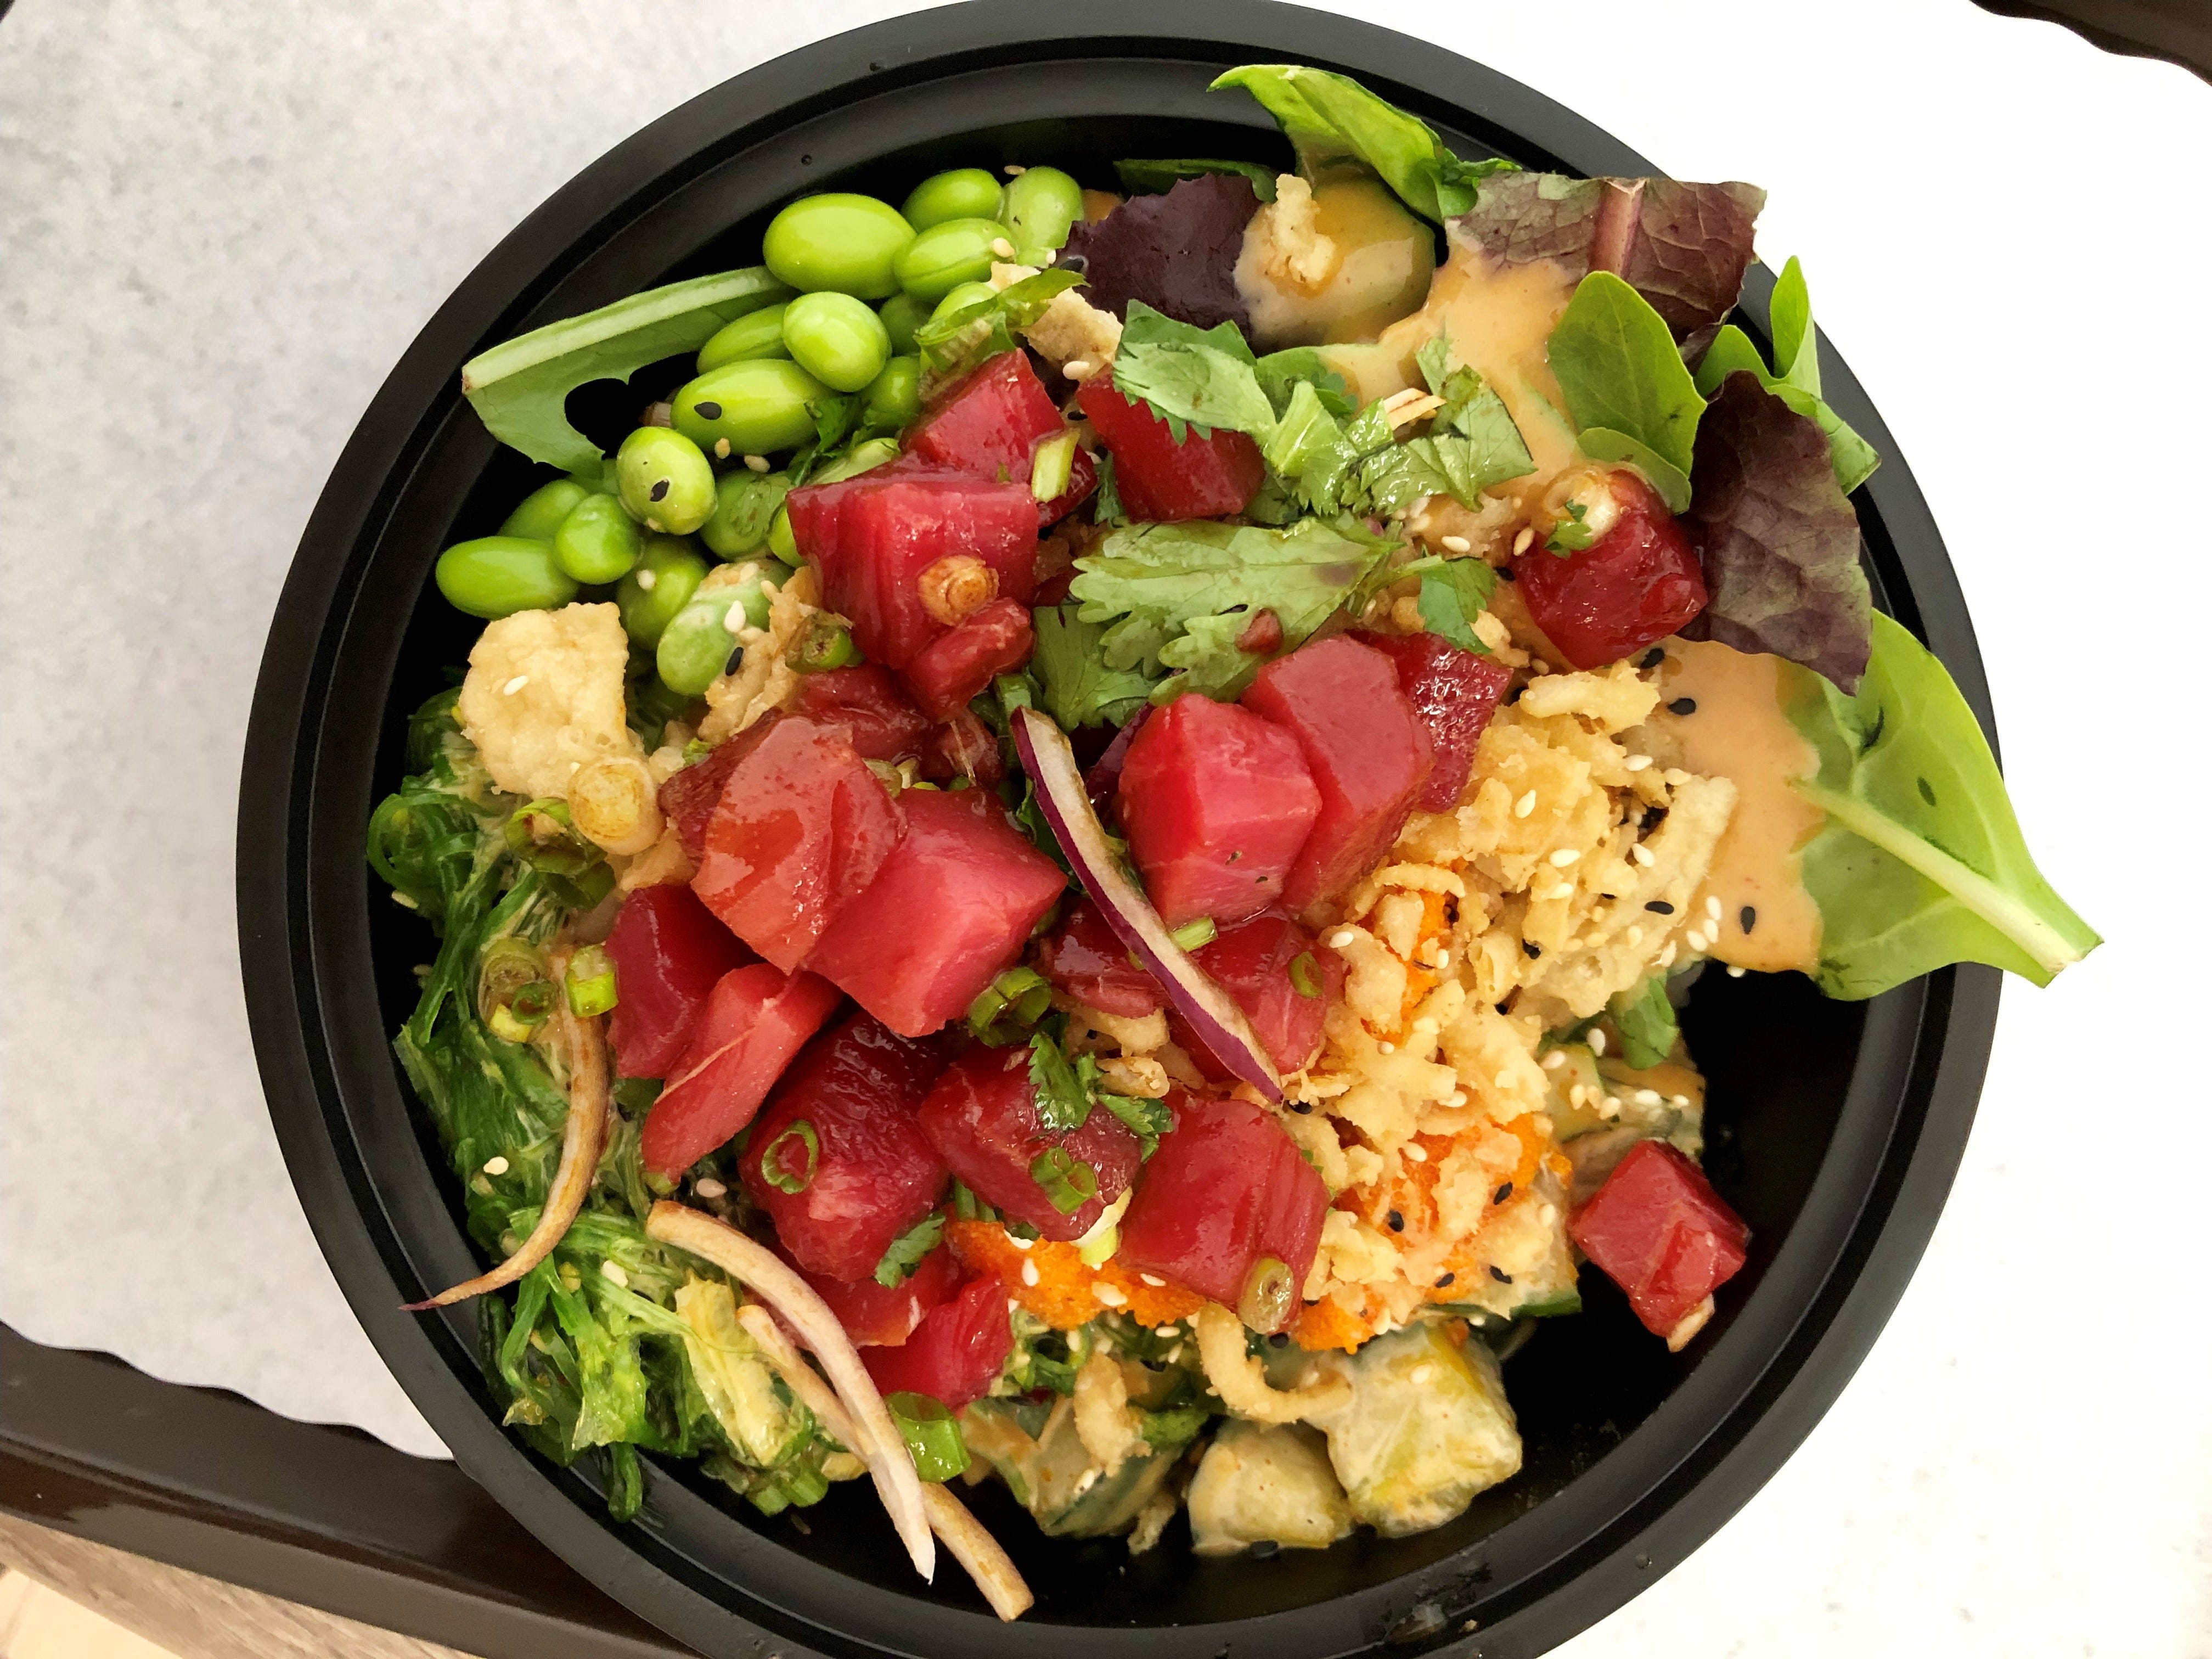 A tuna poke bowl with edamame, spicy cucumbers, seaweed salad, greens and more from PokeBowl Cafe in Fort Myers.